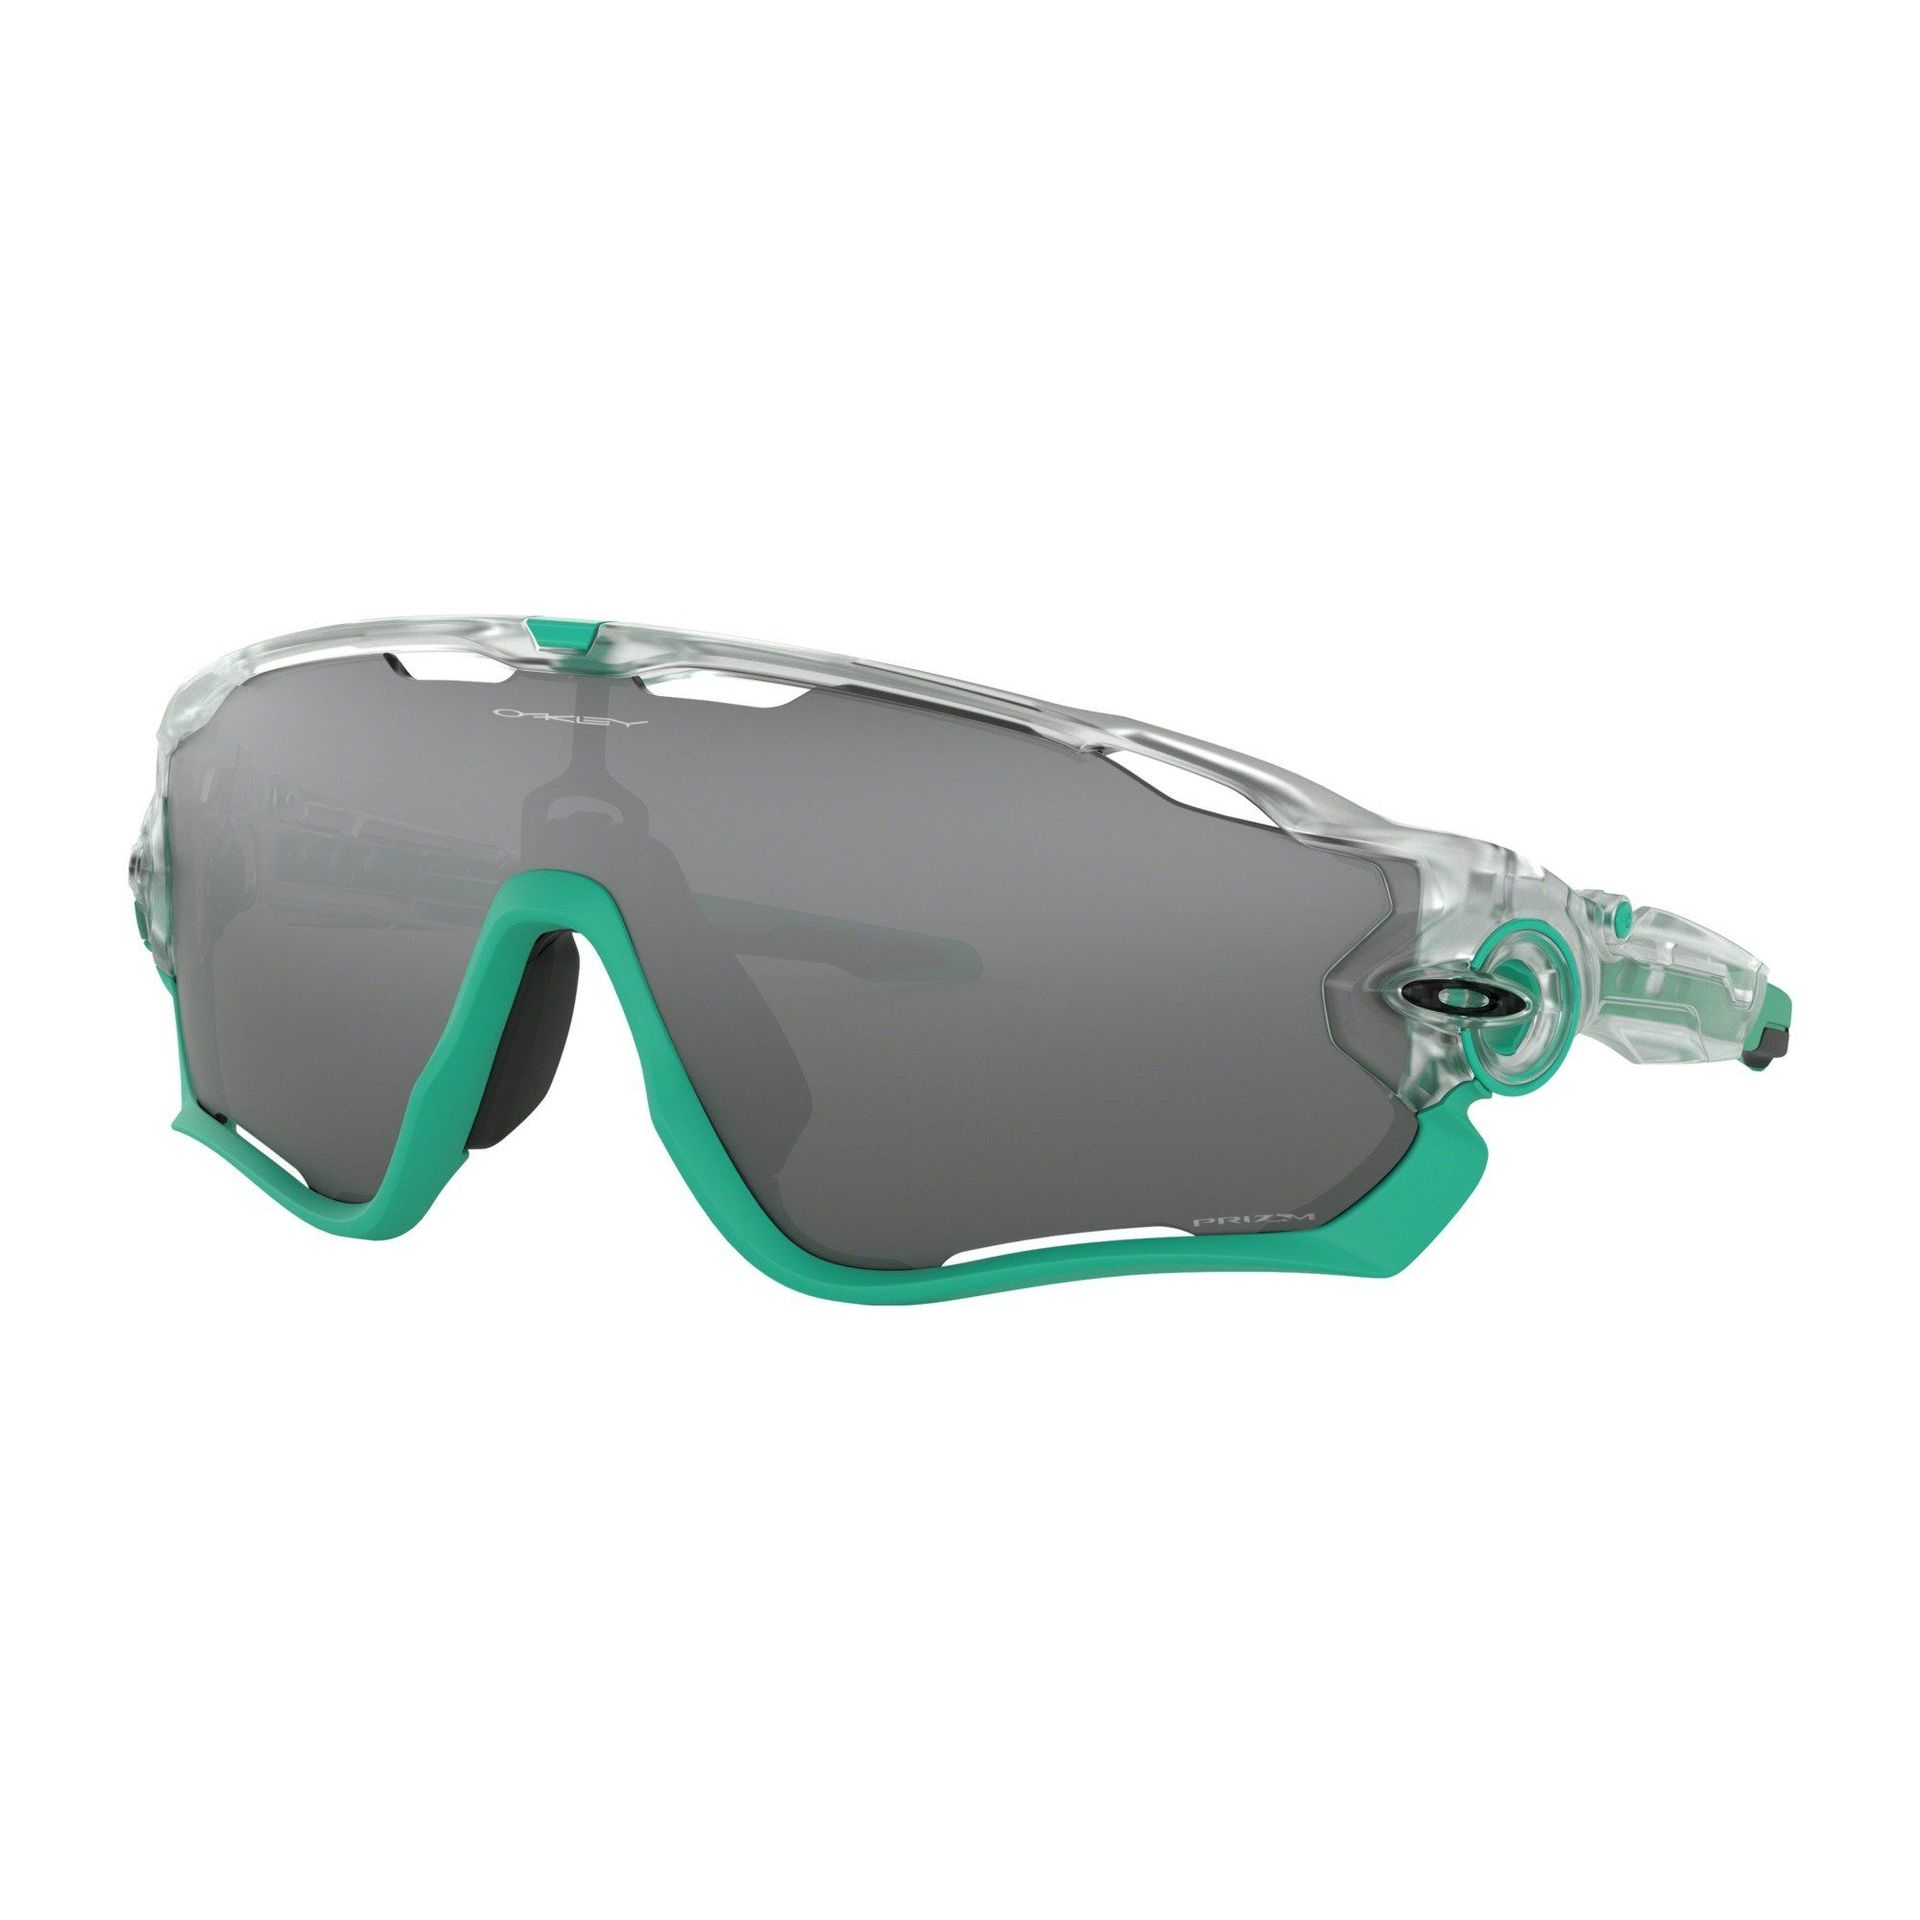 OKULARY OAKLEY JAWBREAKER CRYSTAL CLEAR|PRIZM BLACK 1